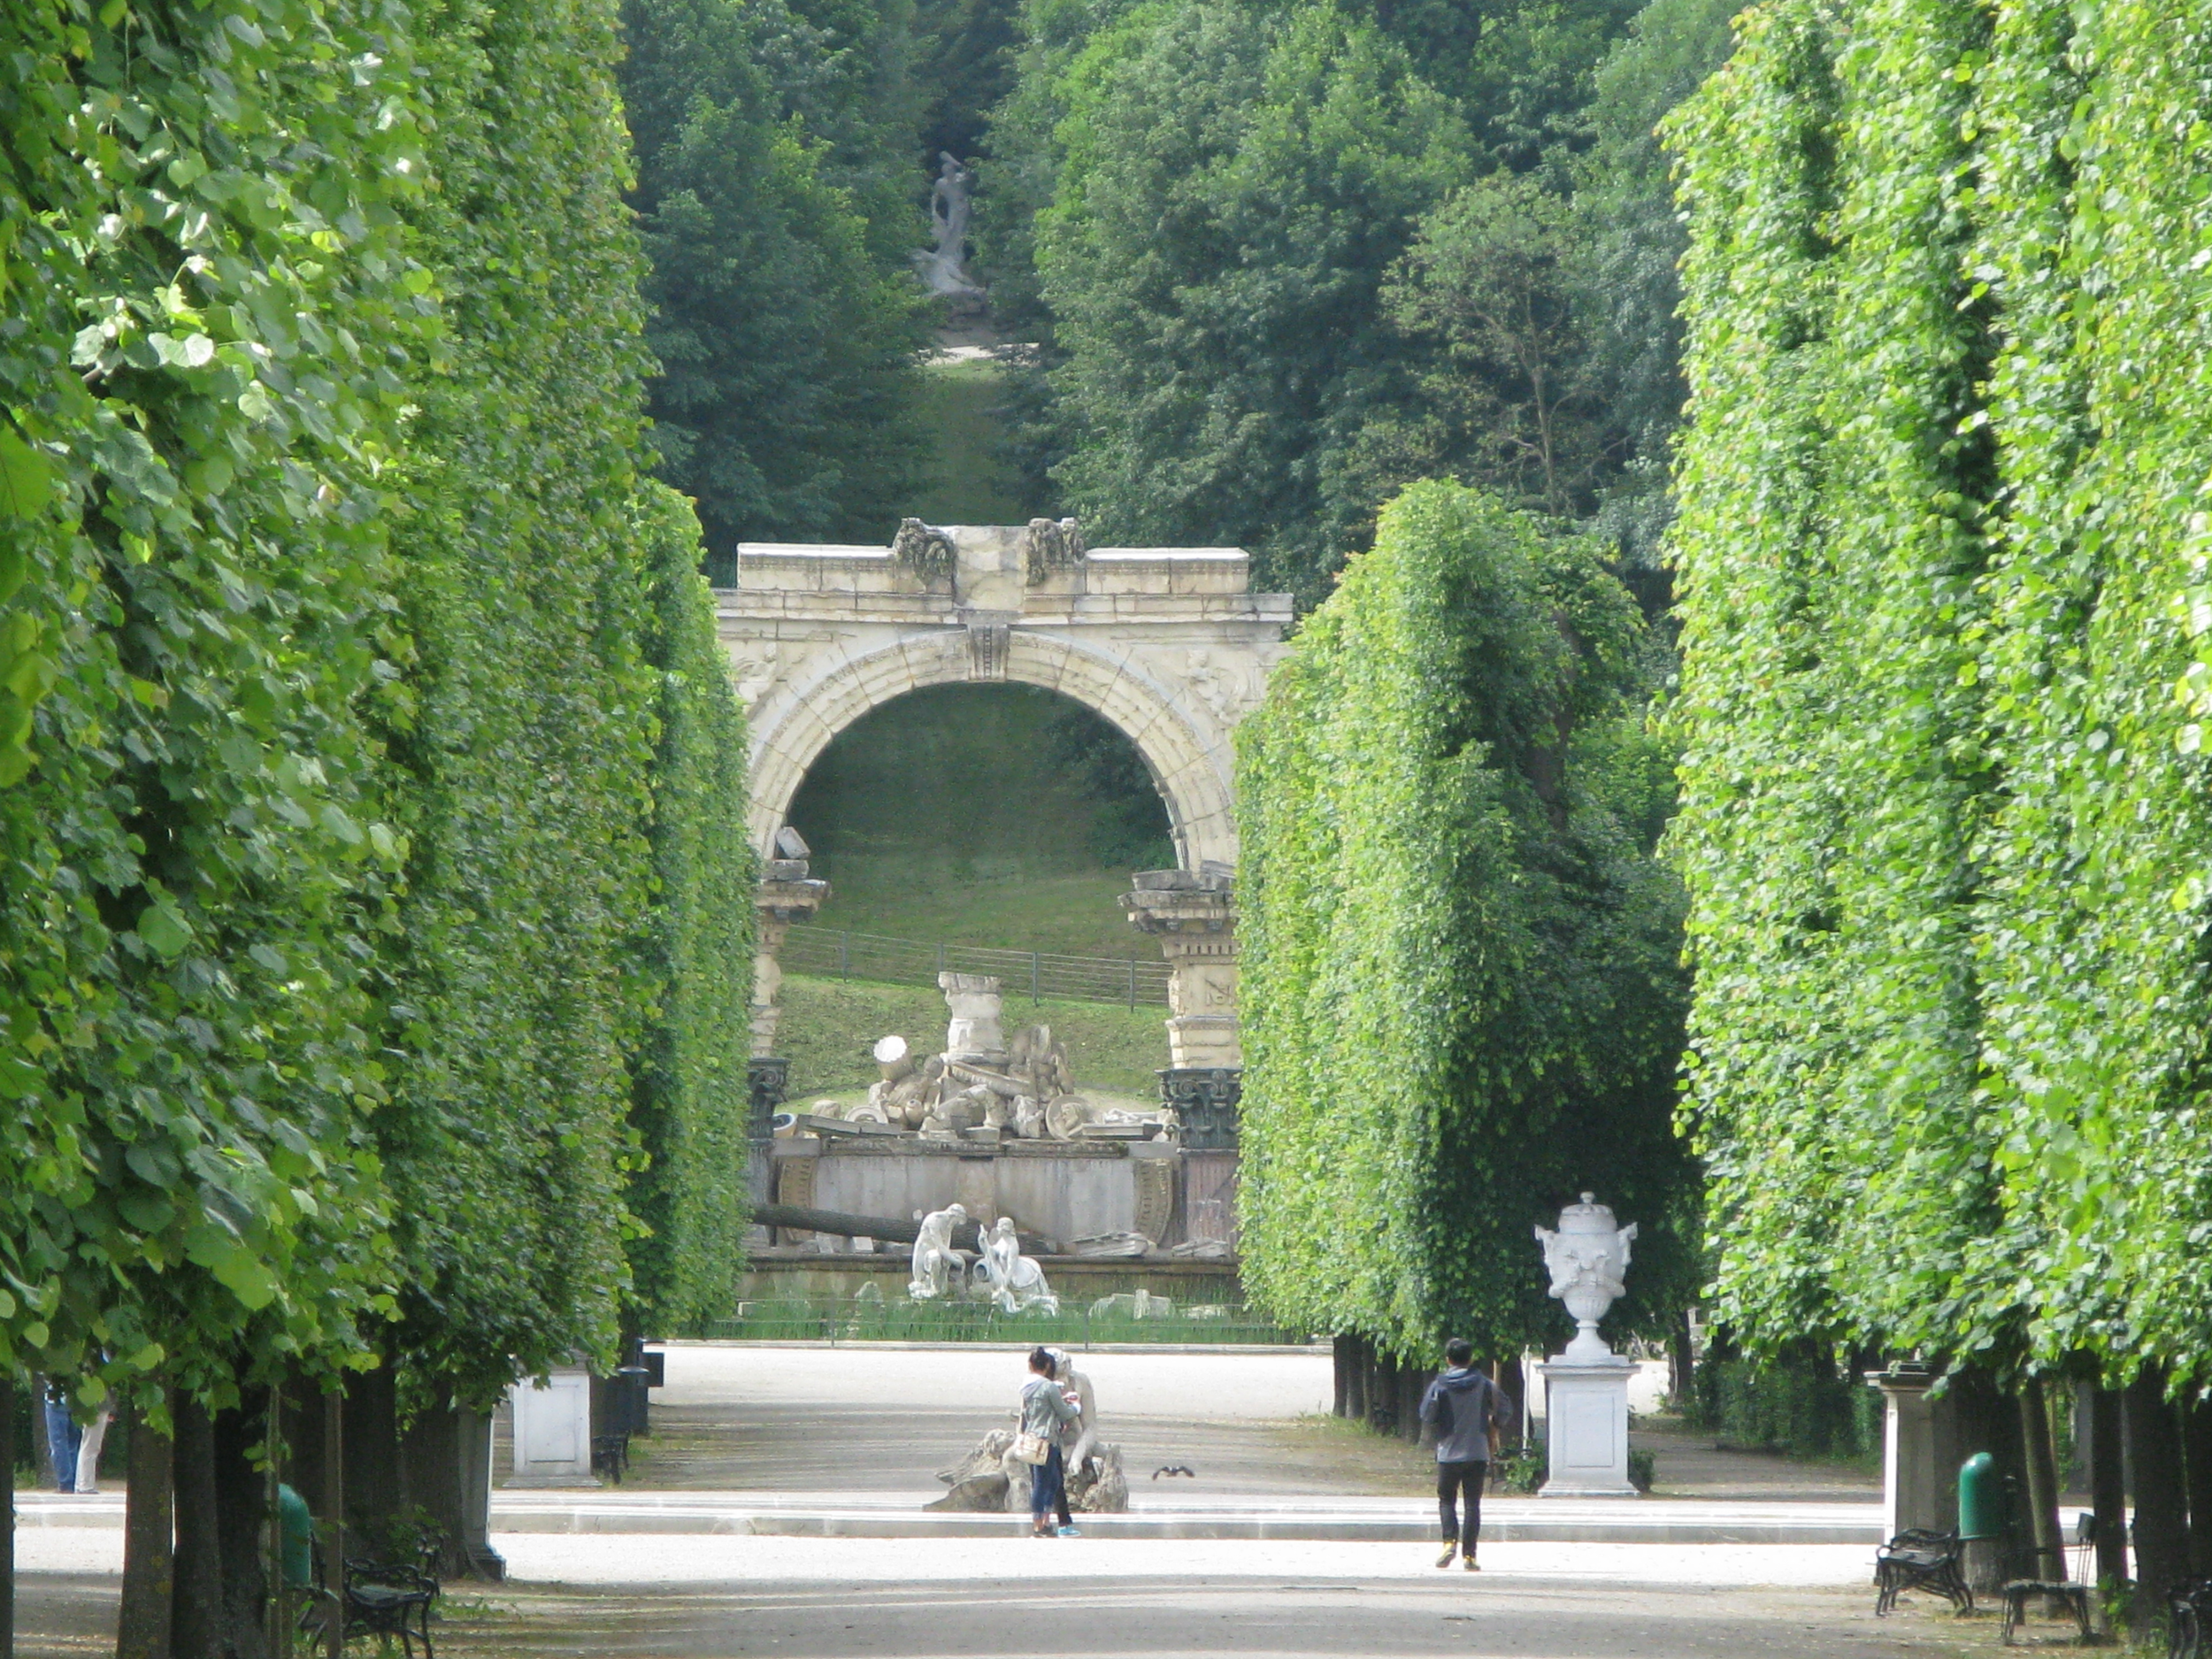 Glorious gardens and parkof the Schonbrunn Palace